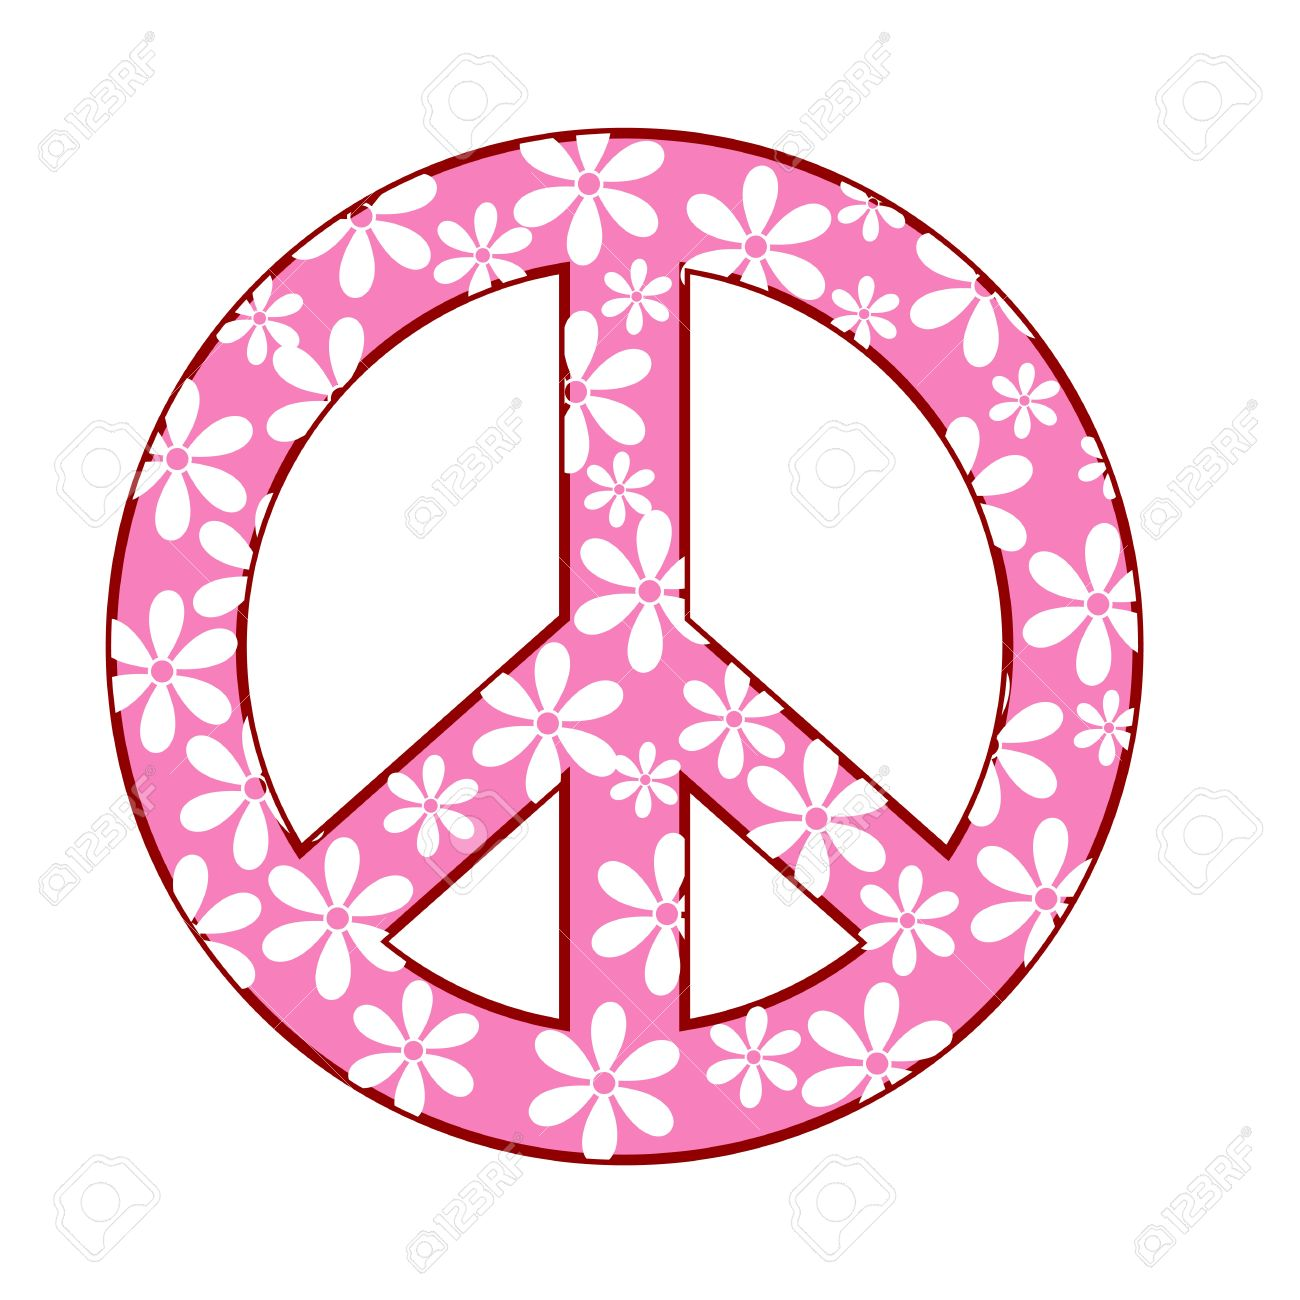 Illustration Of Peace Symbol With Floral Texture Royalty Free